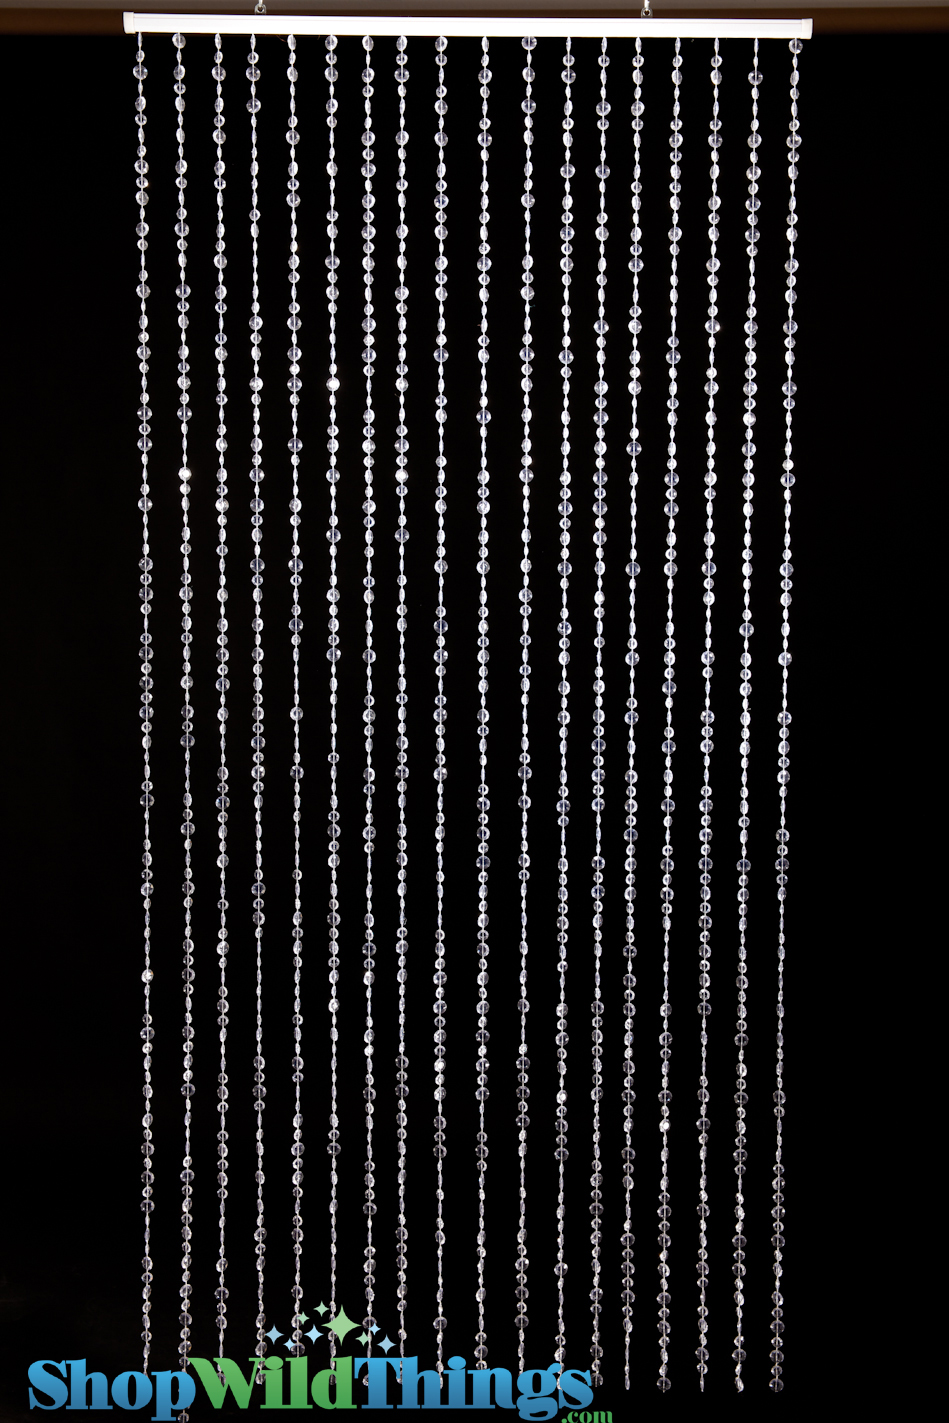 Crystal Clear Curtains Amp Backdrop 9 Feet Long Non Iridescent Beaded Curtain Diamante Duo